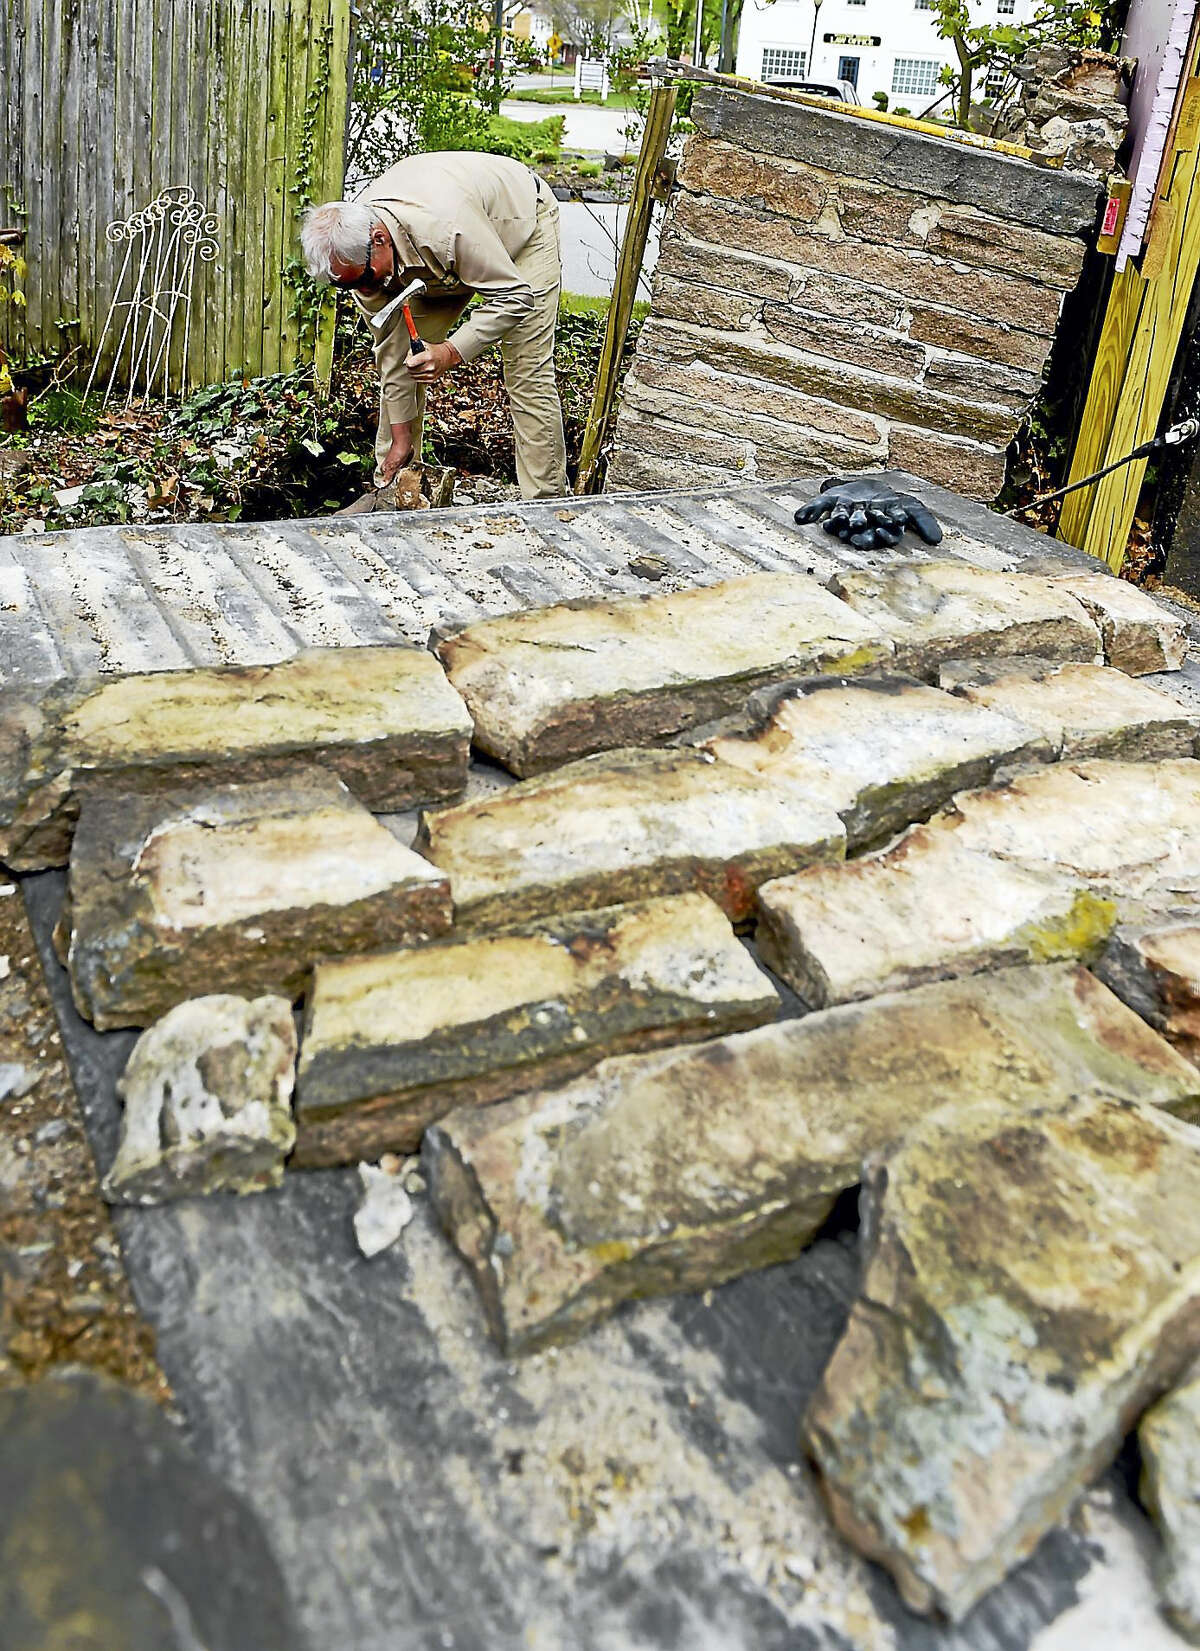 (Peter Hvizdak - New Haven Register) Master Stone Artisan Andrew Pighills of English Gardens and Landscaping of Killingworth dismantles a mid-19th century historic smokehouse at the St. Alexis Orthodox Church in Clinton.